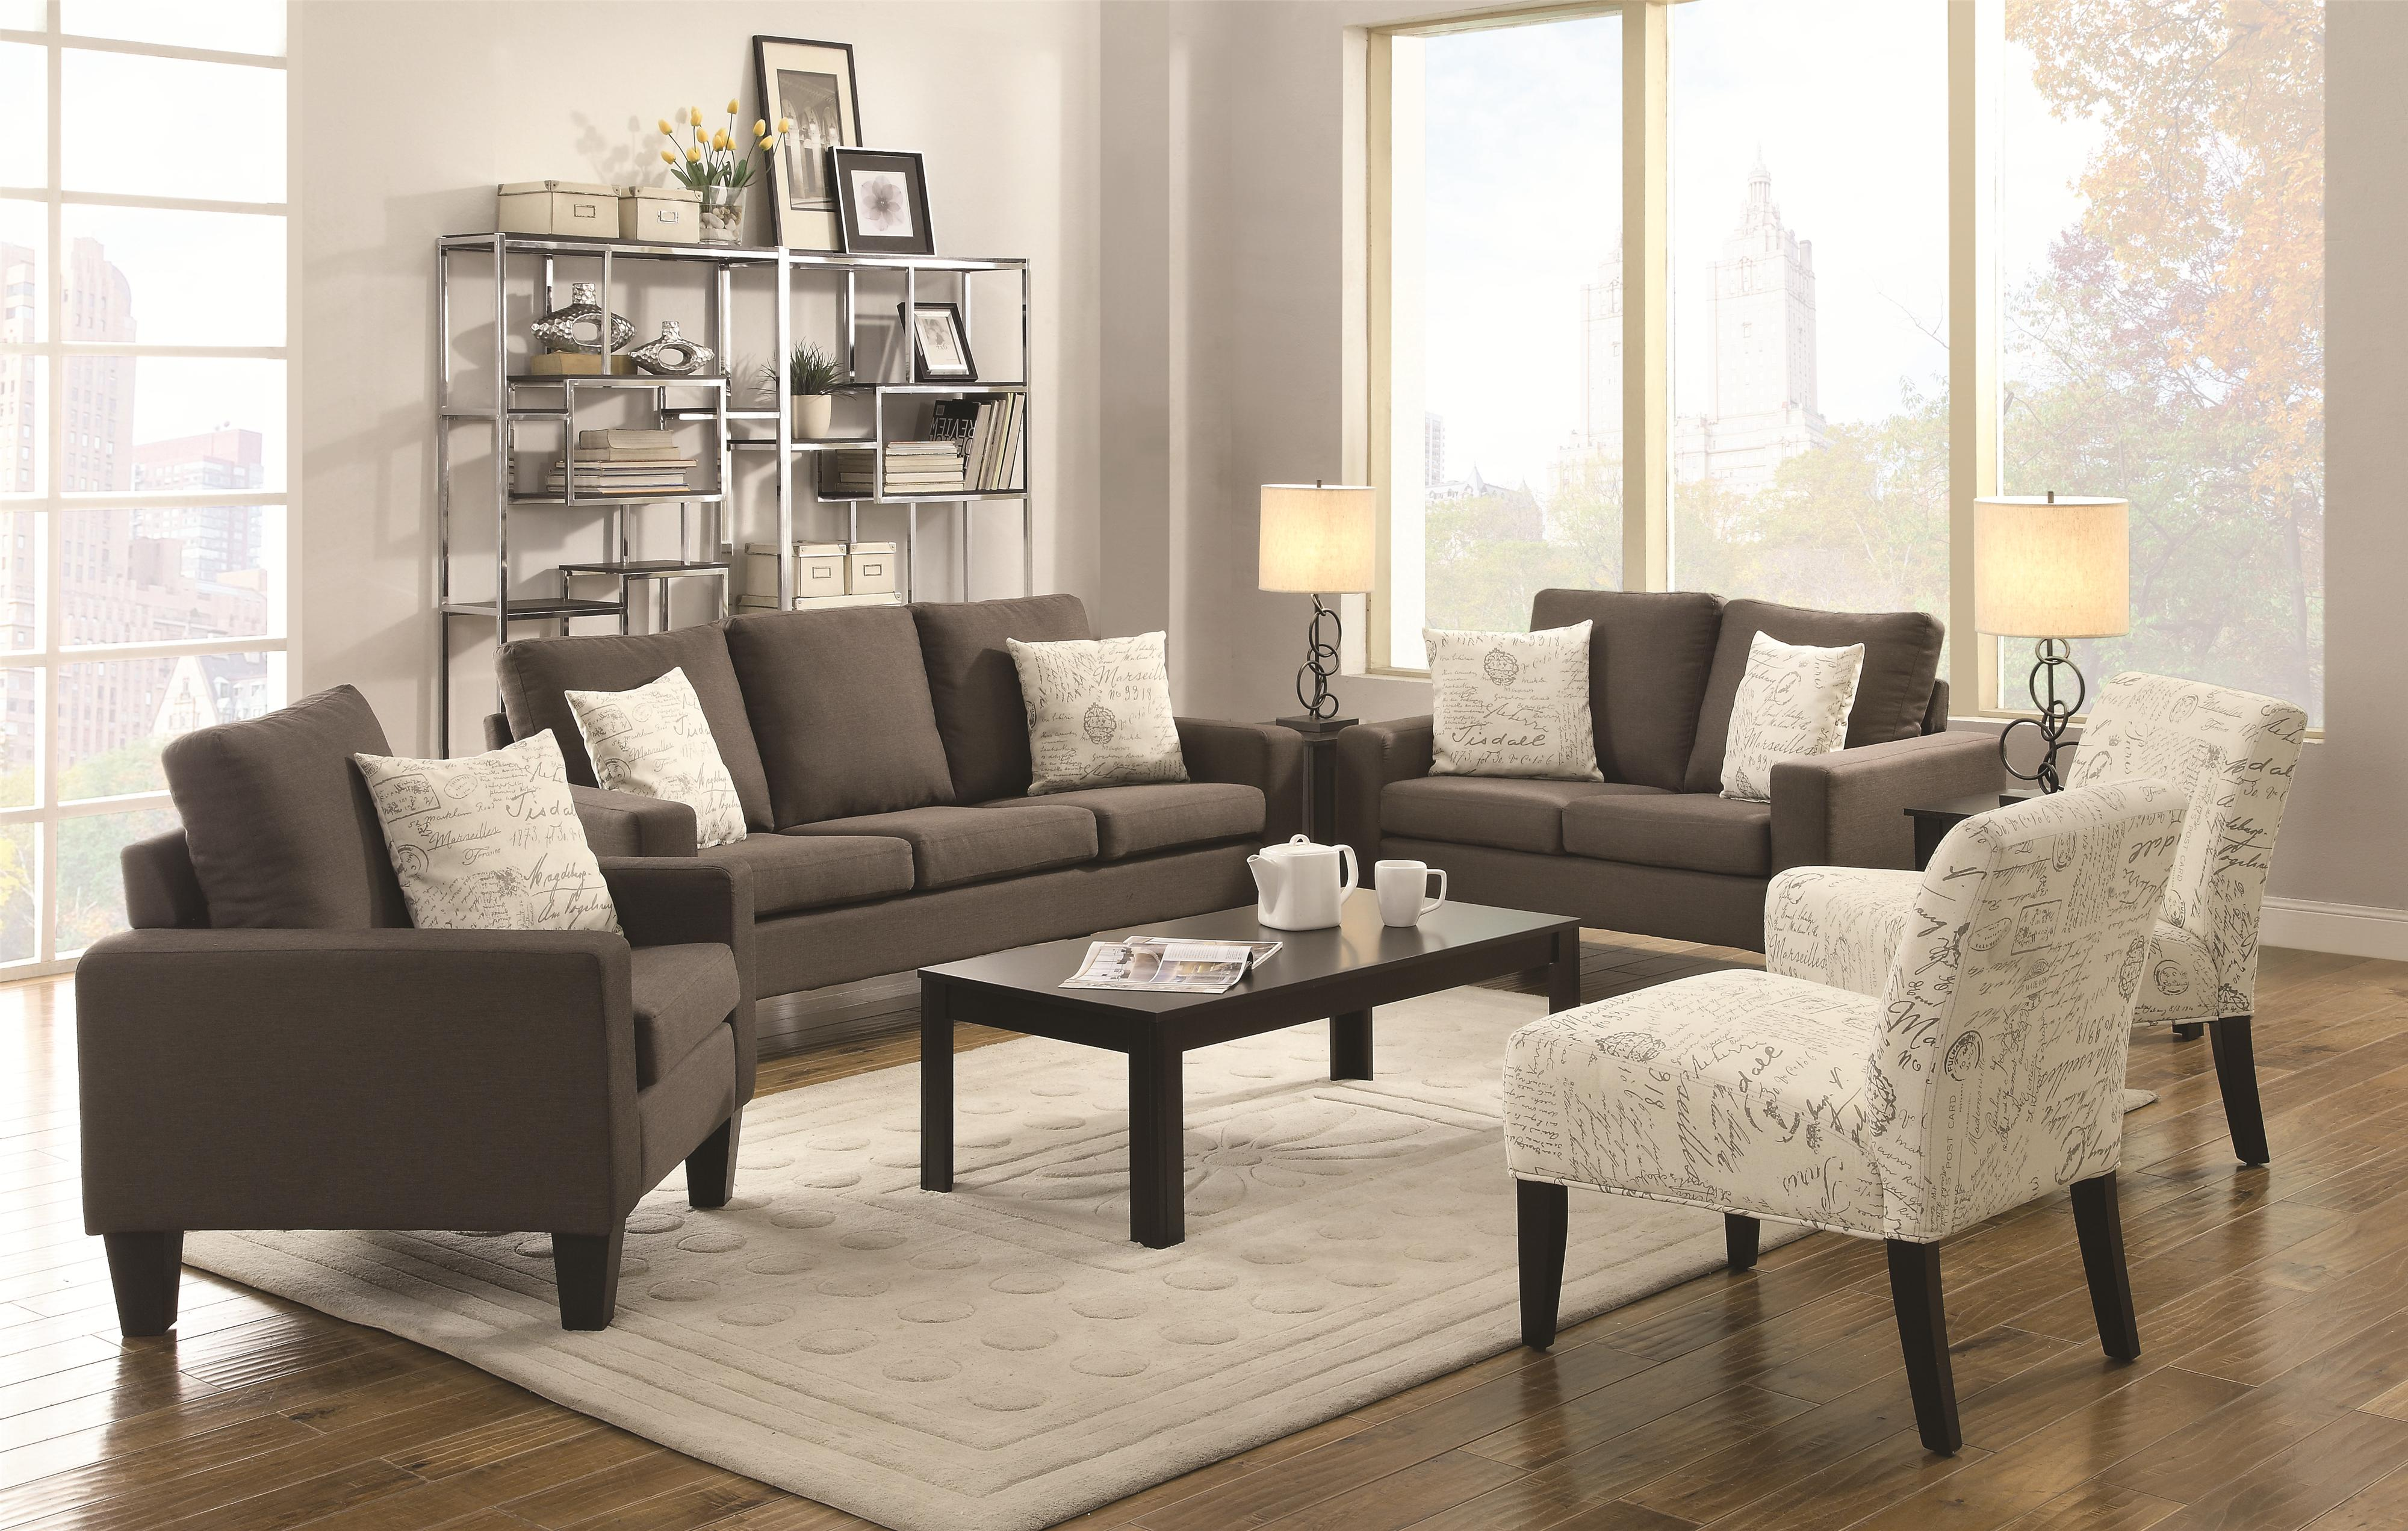 Coaster Bachman Sofa With Track Arms And Tapered Wood Legs   Coaster Fine  Furniture